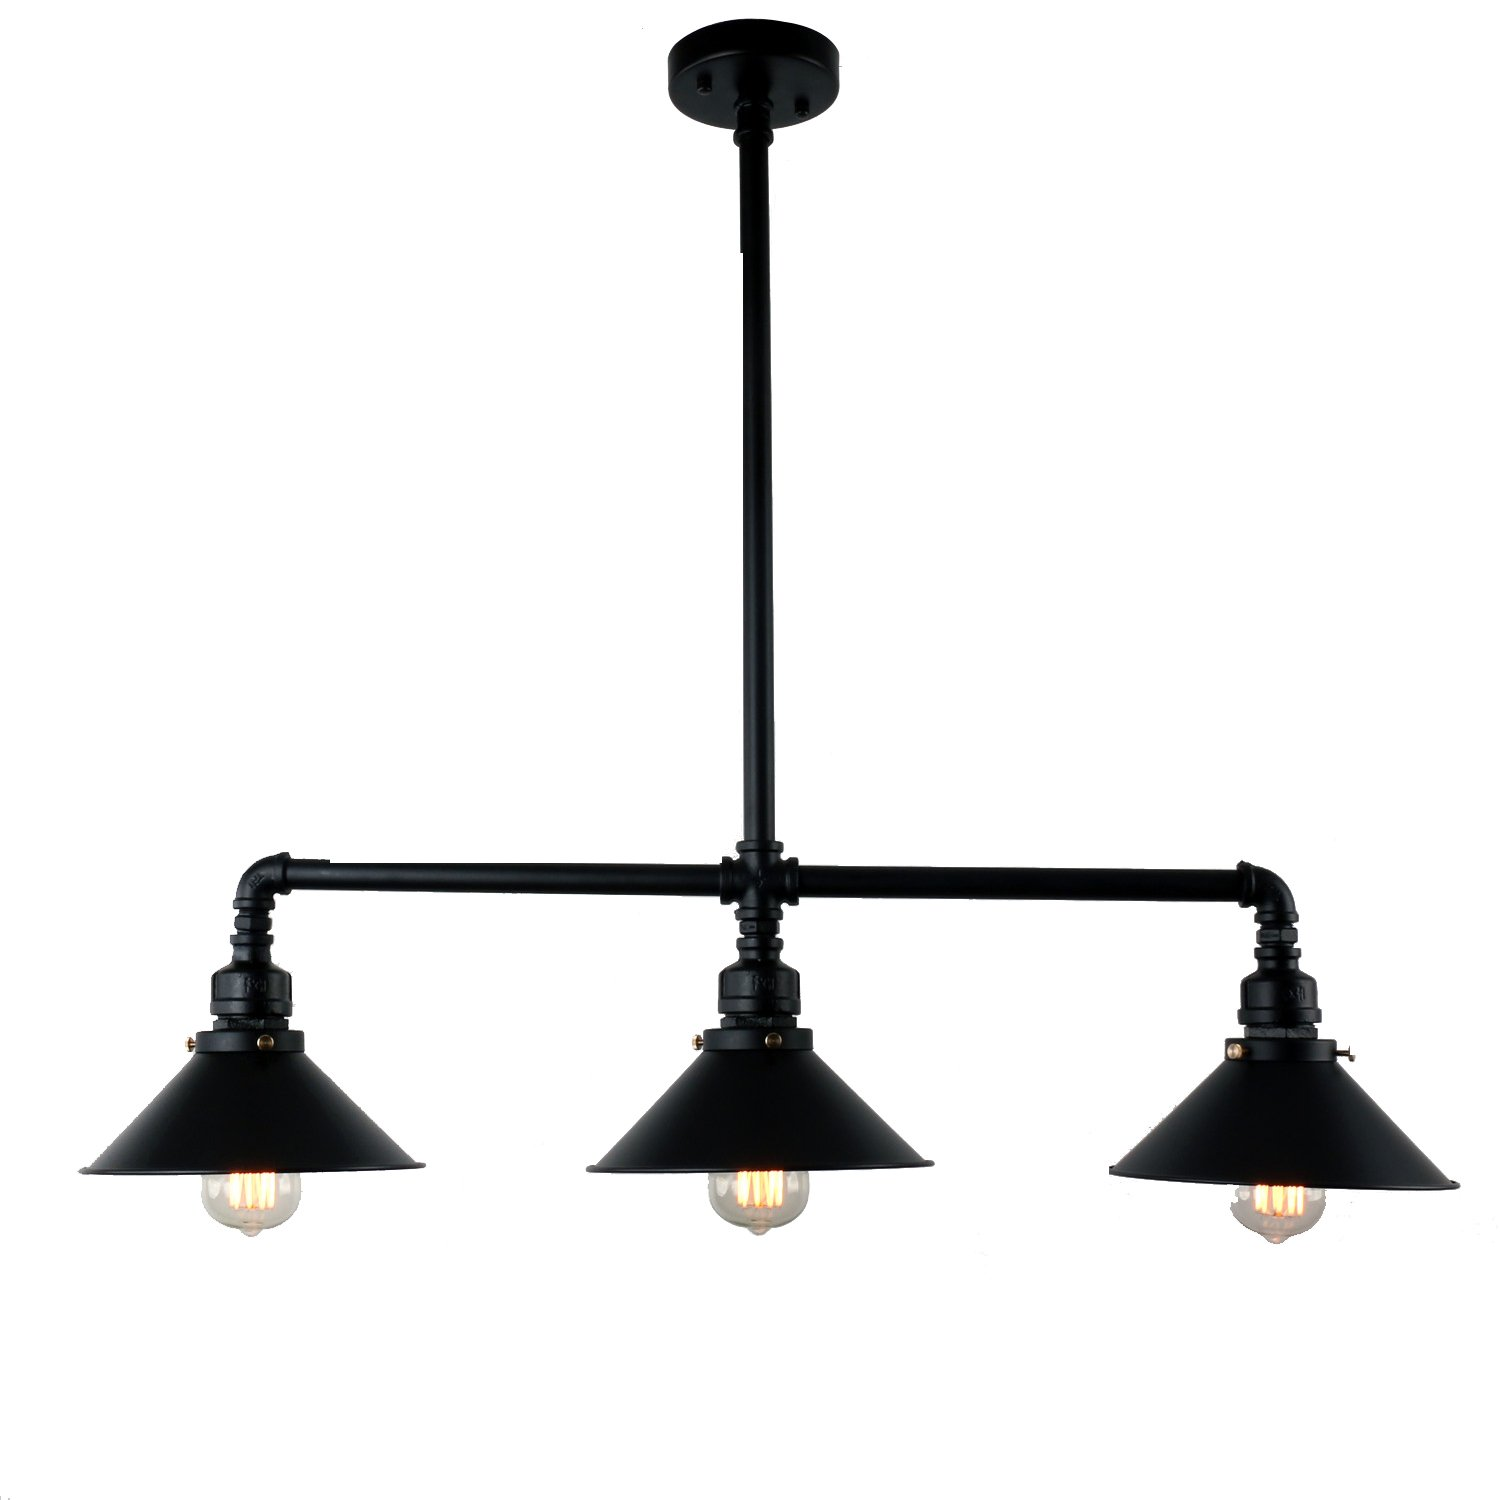 unique awesome of light pendant black unison bellevue lamp hypermallapartments